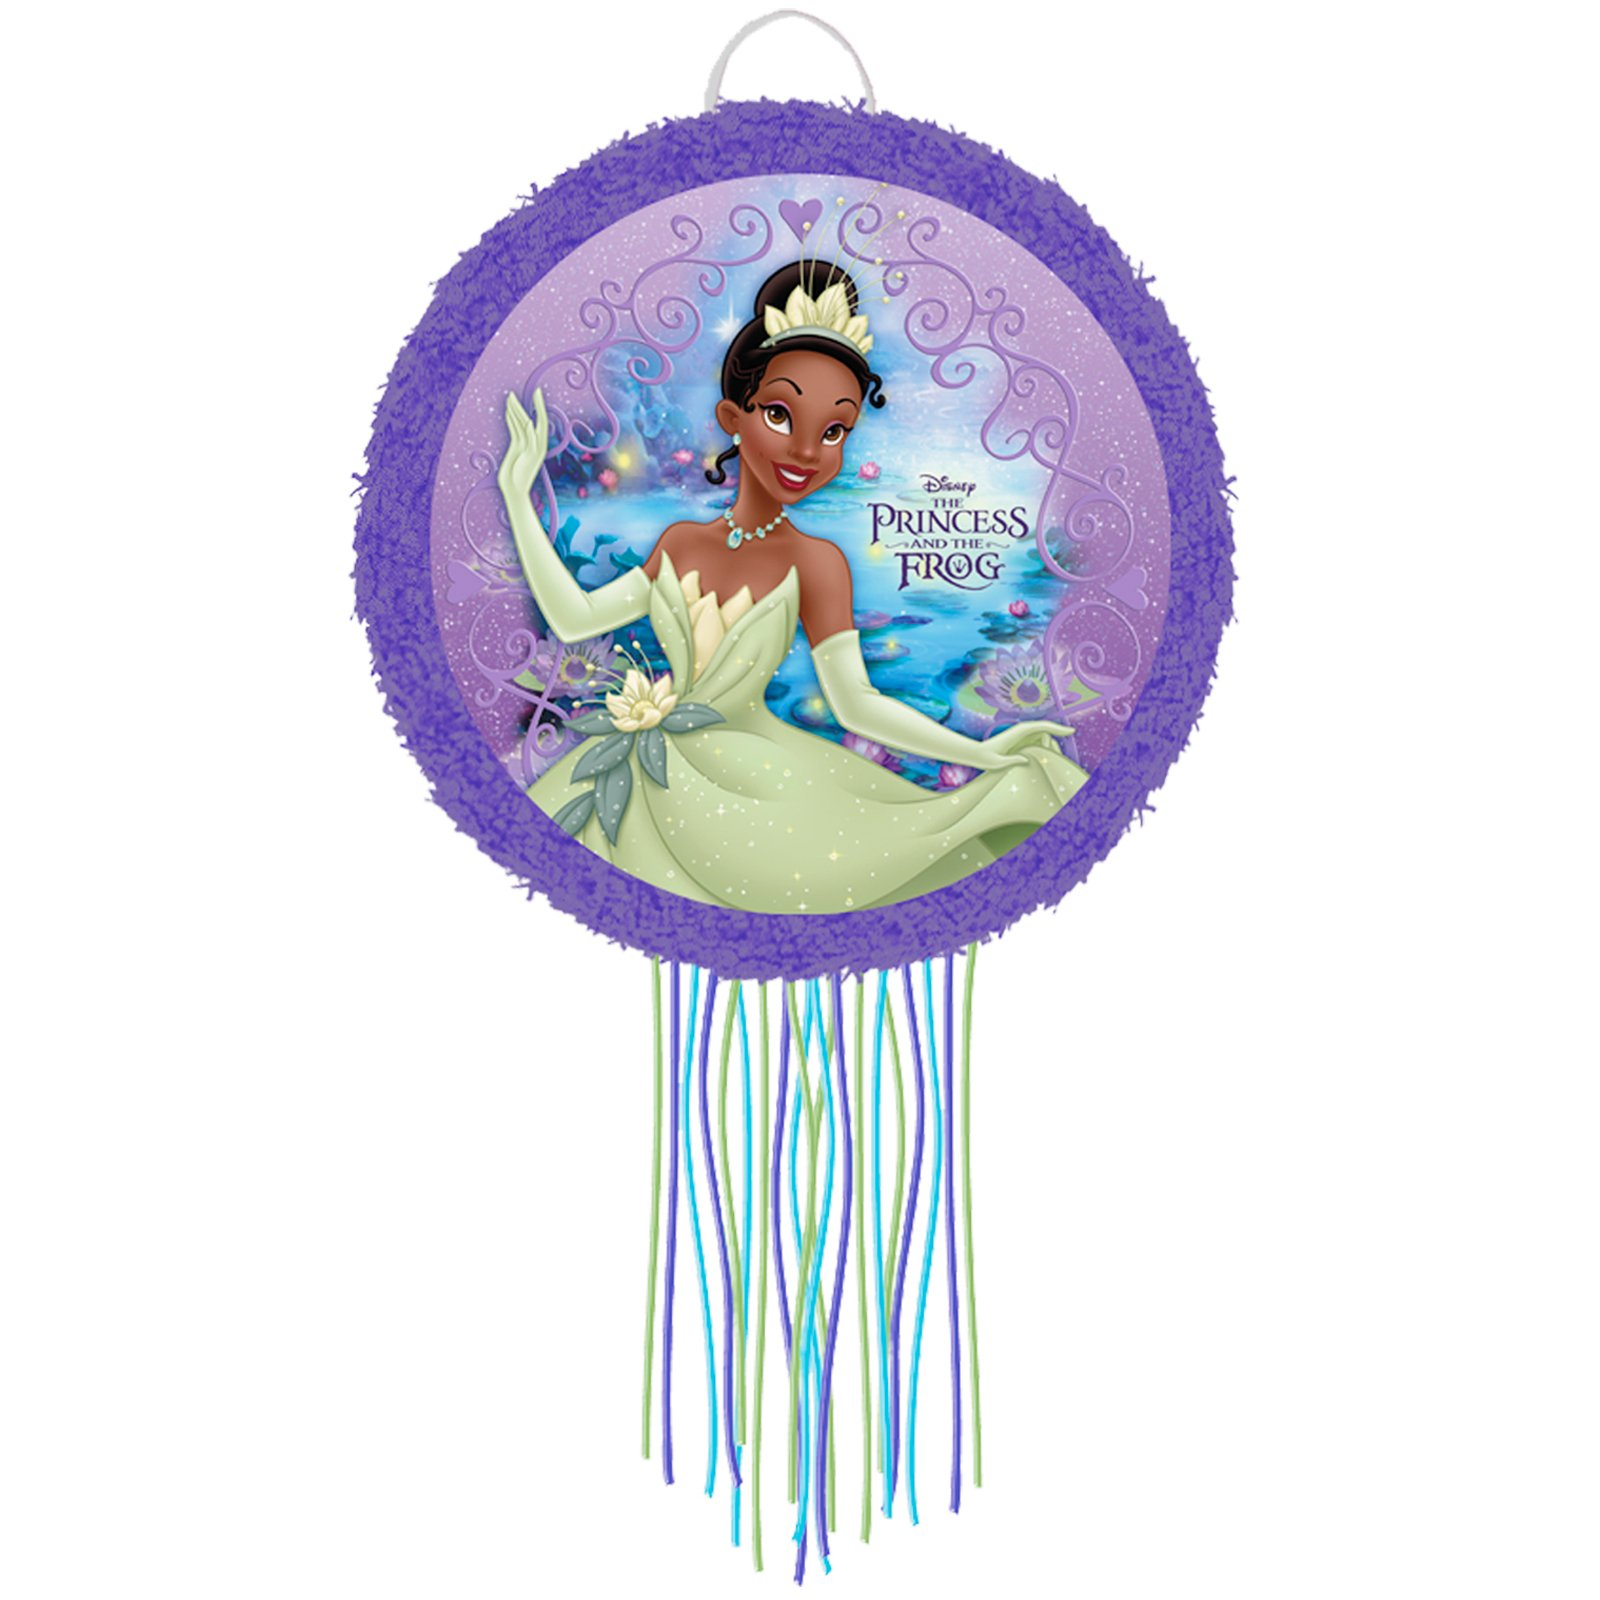 Princess and the Frog Pull-String Pinata